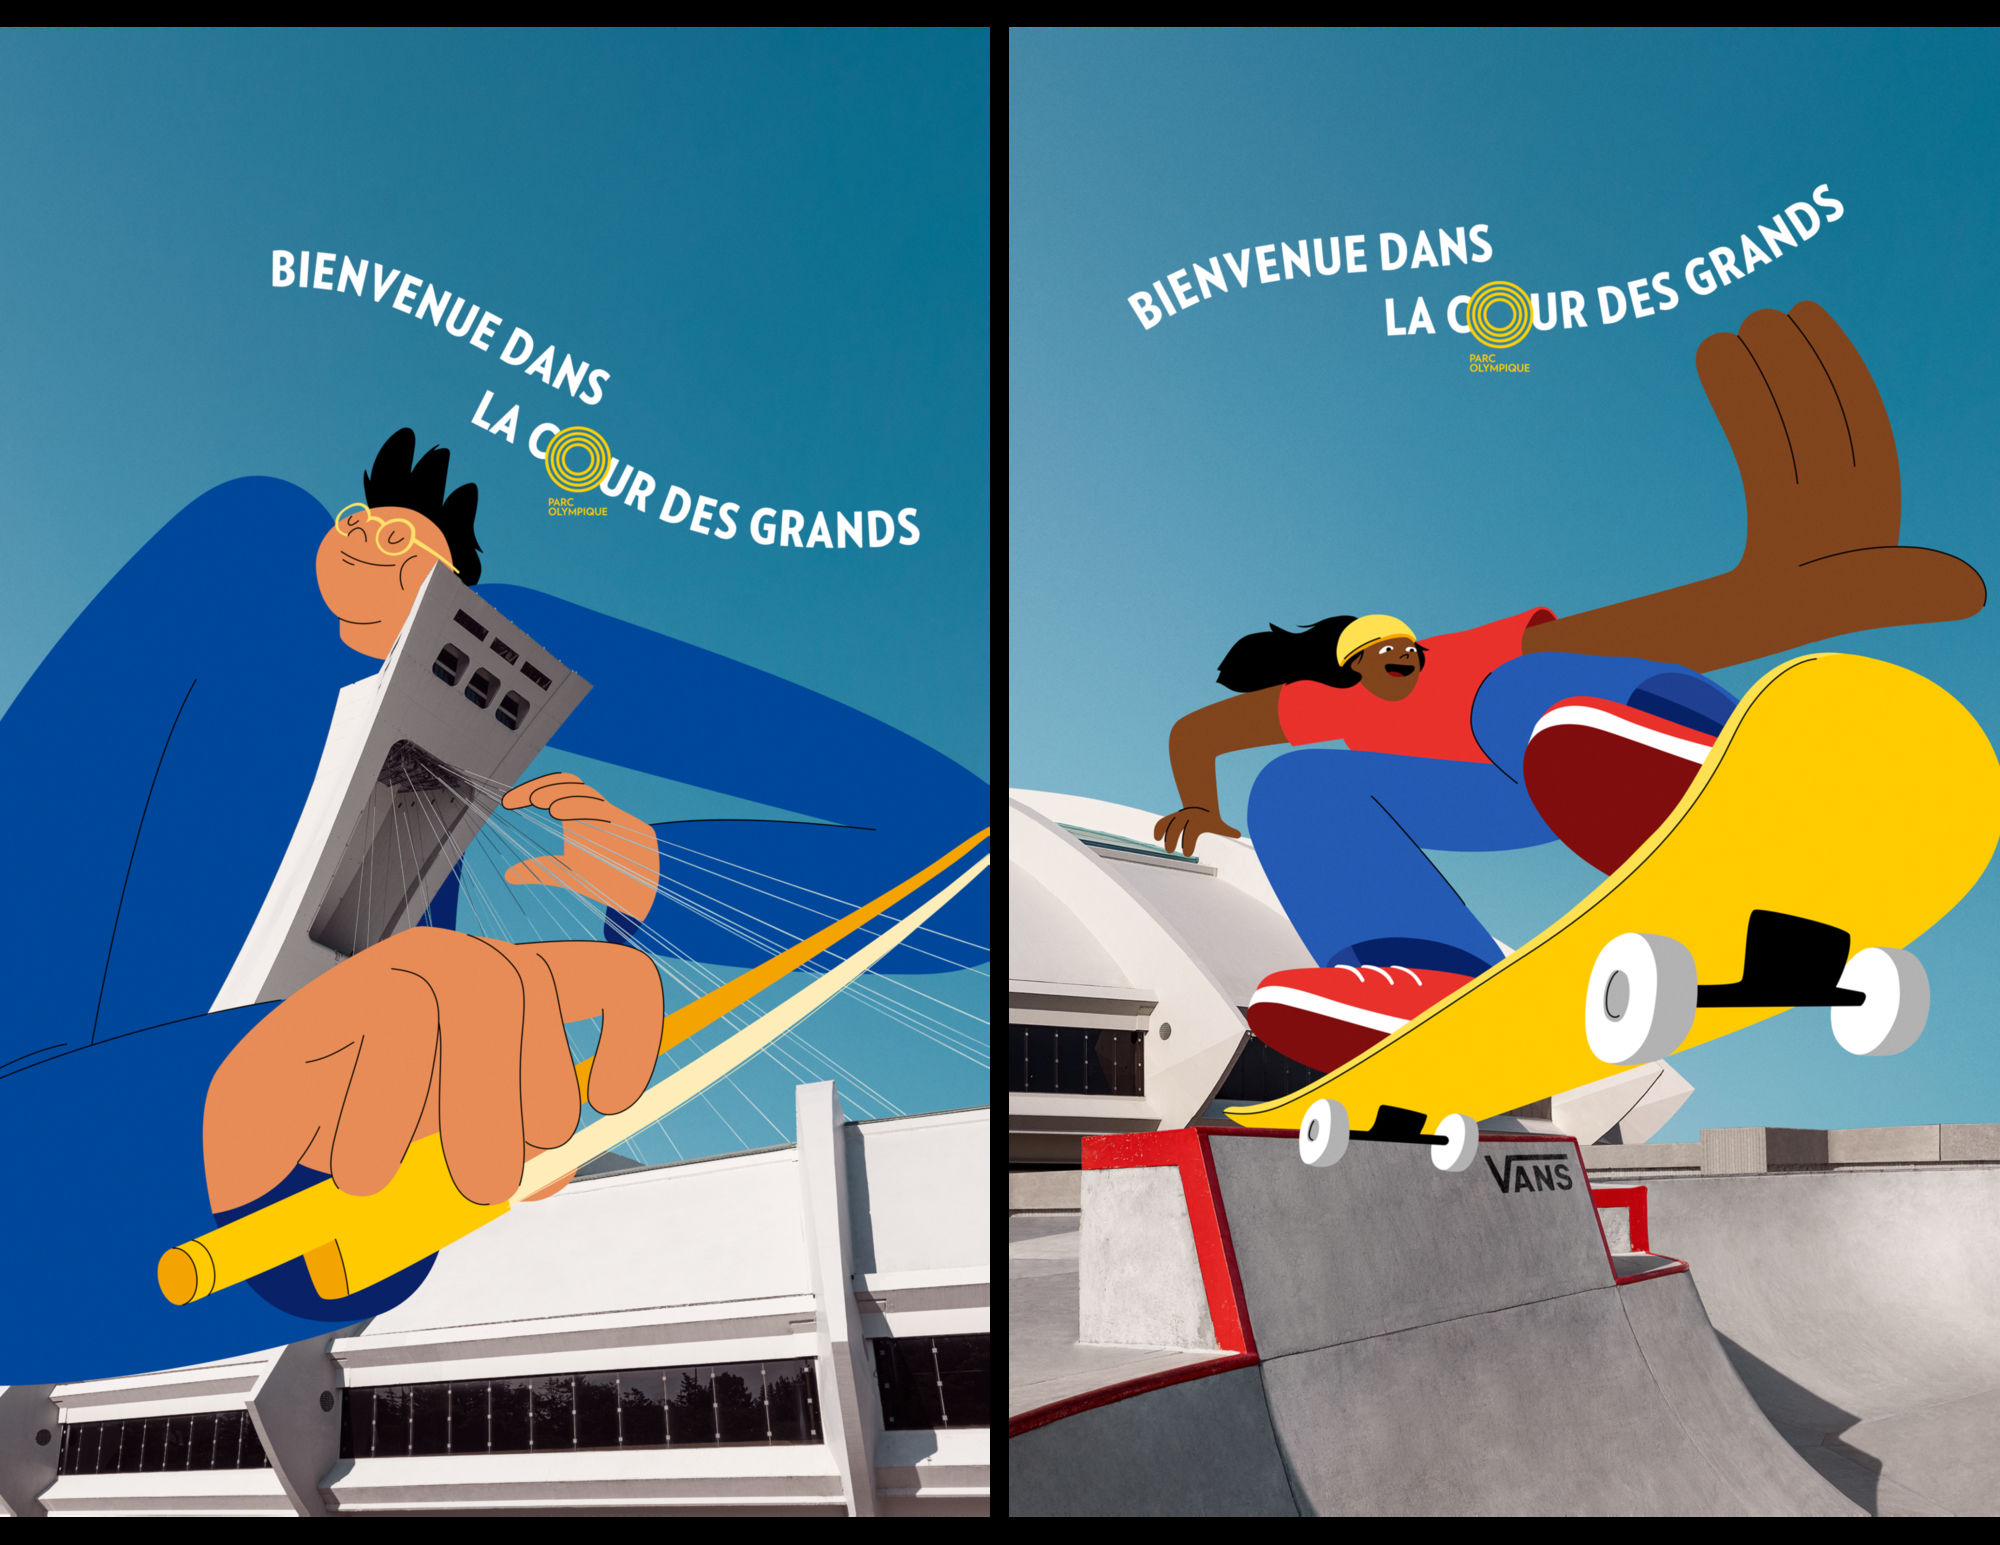 The Olympic Park Montreal reveals its new campaign, Welcome to the giant's playground ! Illustrations by Cécile Gariépy c/o JSR AGENCY